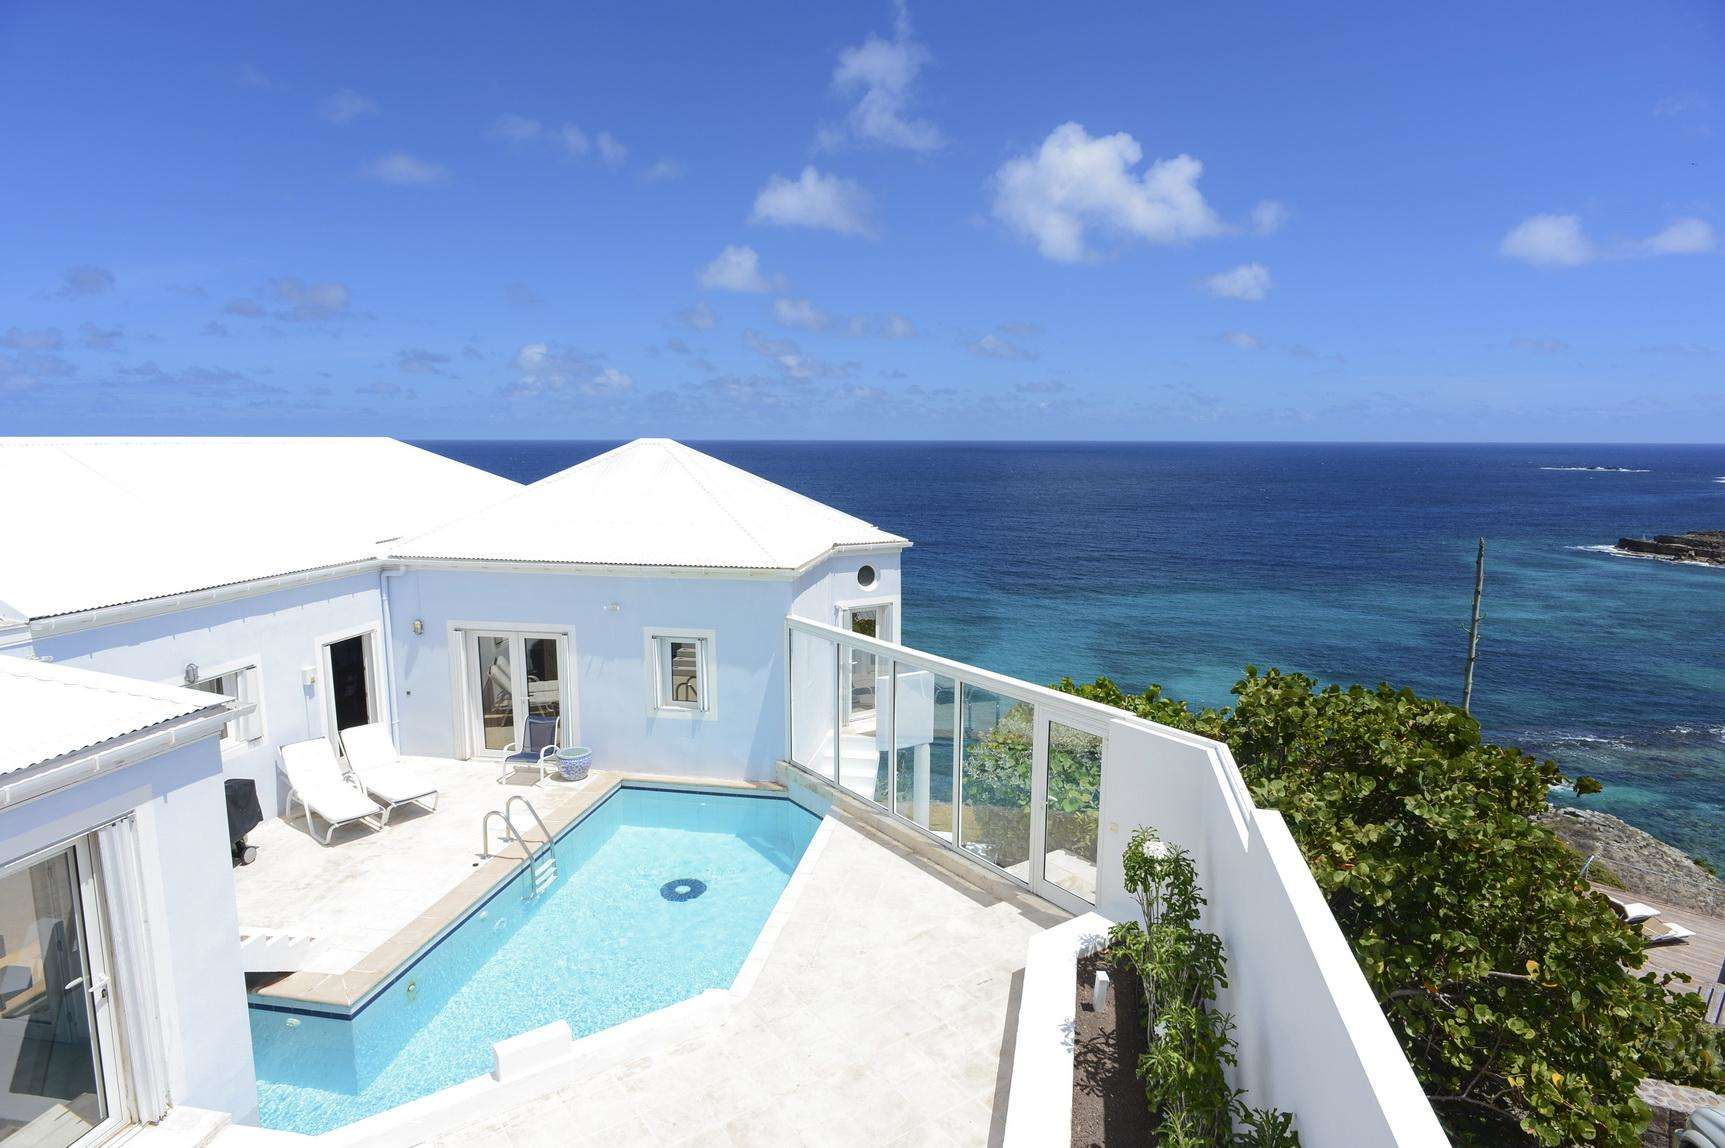 Luxury villa rentals caribbean - St barthelemy - Pointe milou - No location 4 - Au Vent - Image 1/37